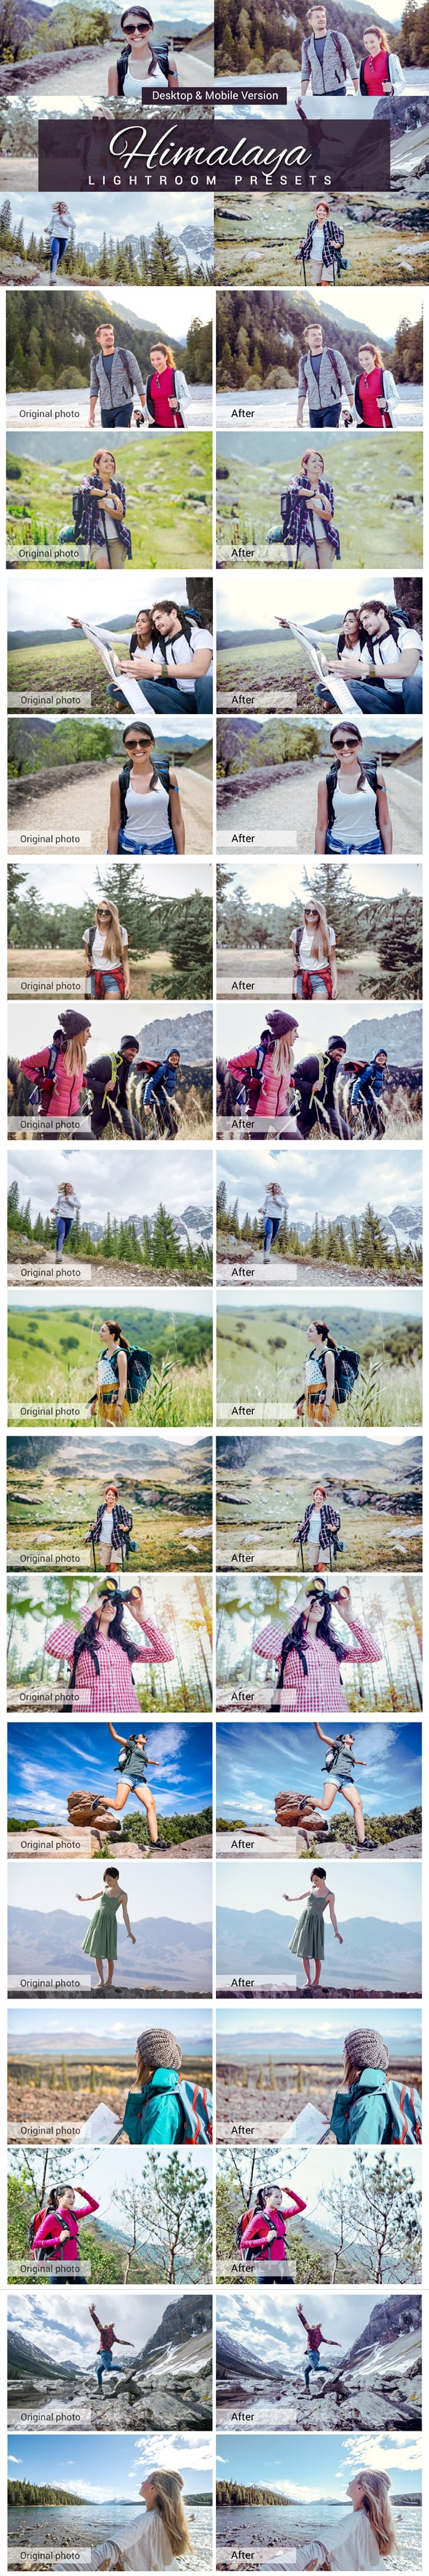 7500 New Complete Bundle Presets Lightroom, Photoshop Actions and Cinematic LUTs - Himalaya Preview min